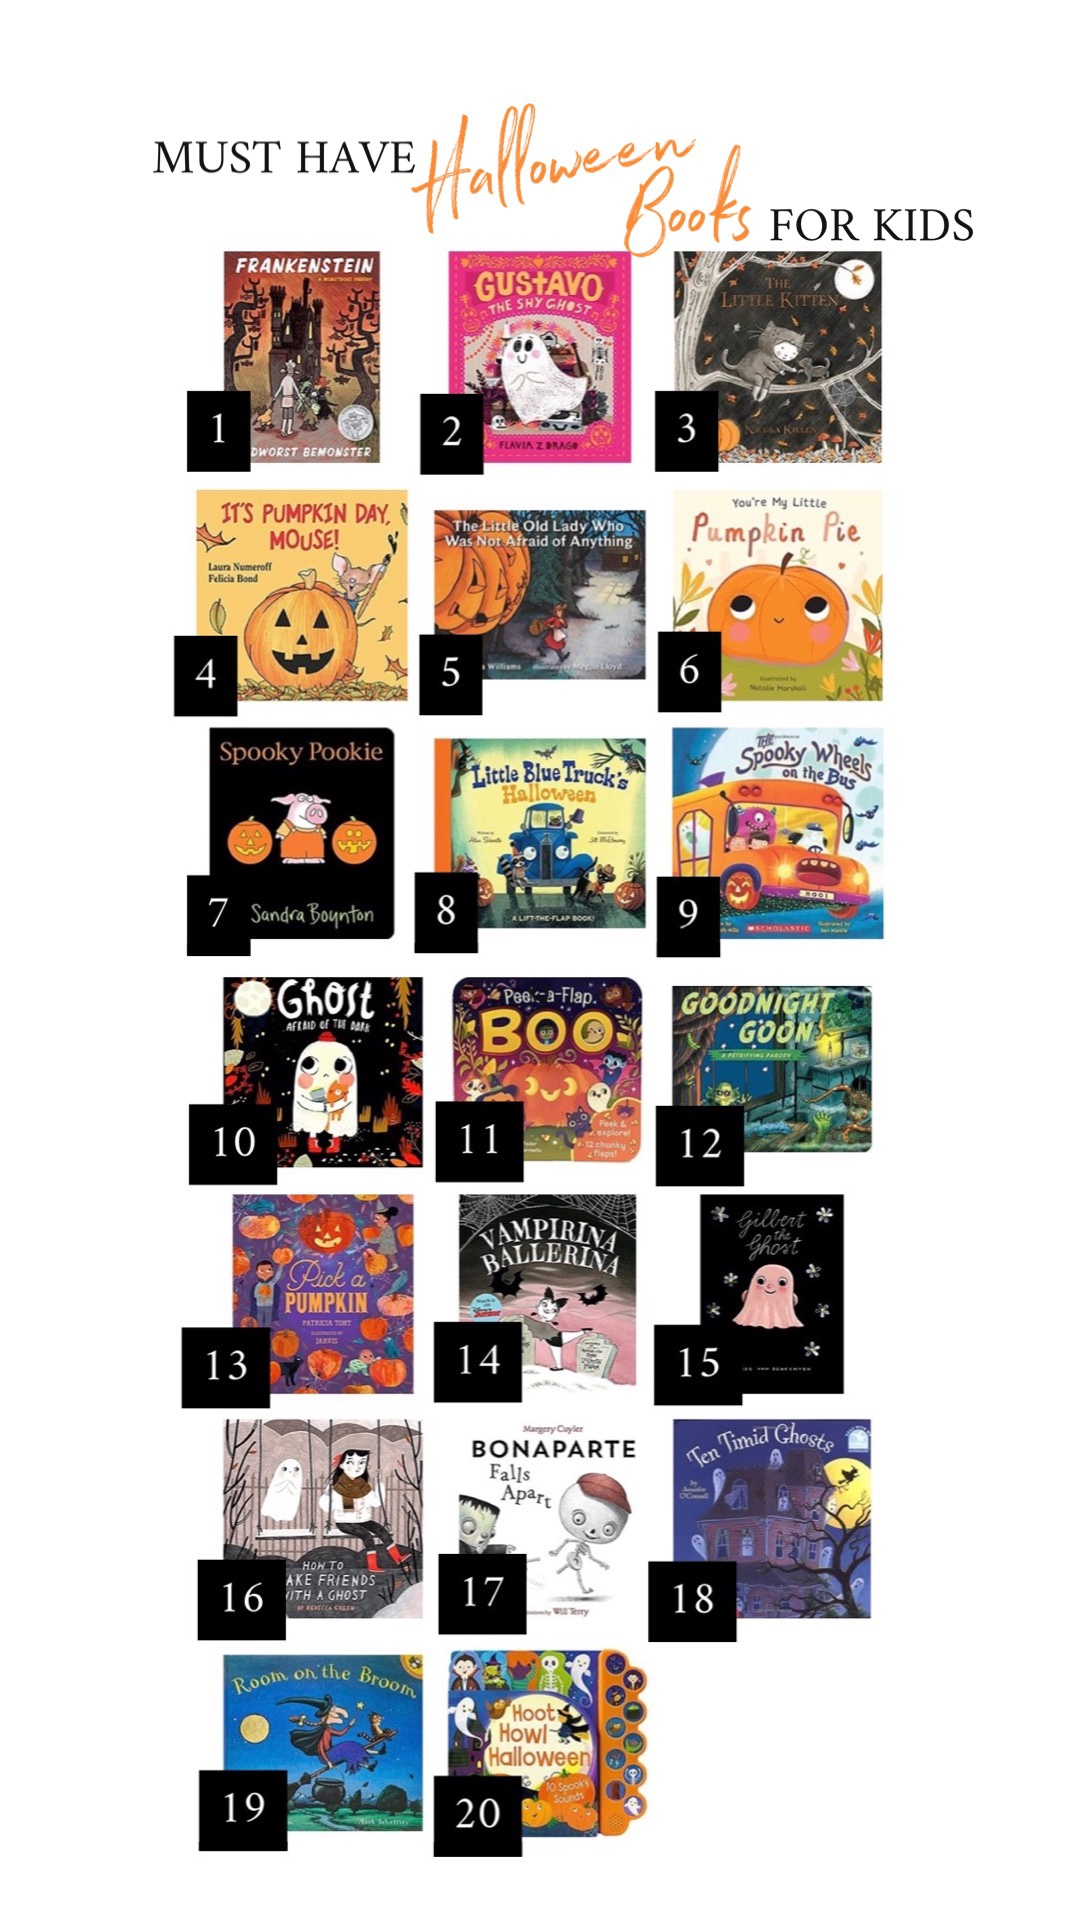 Must Have Halloween Books forKids